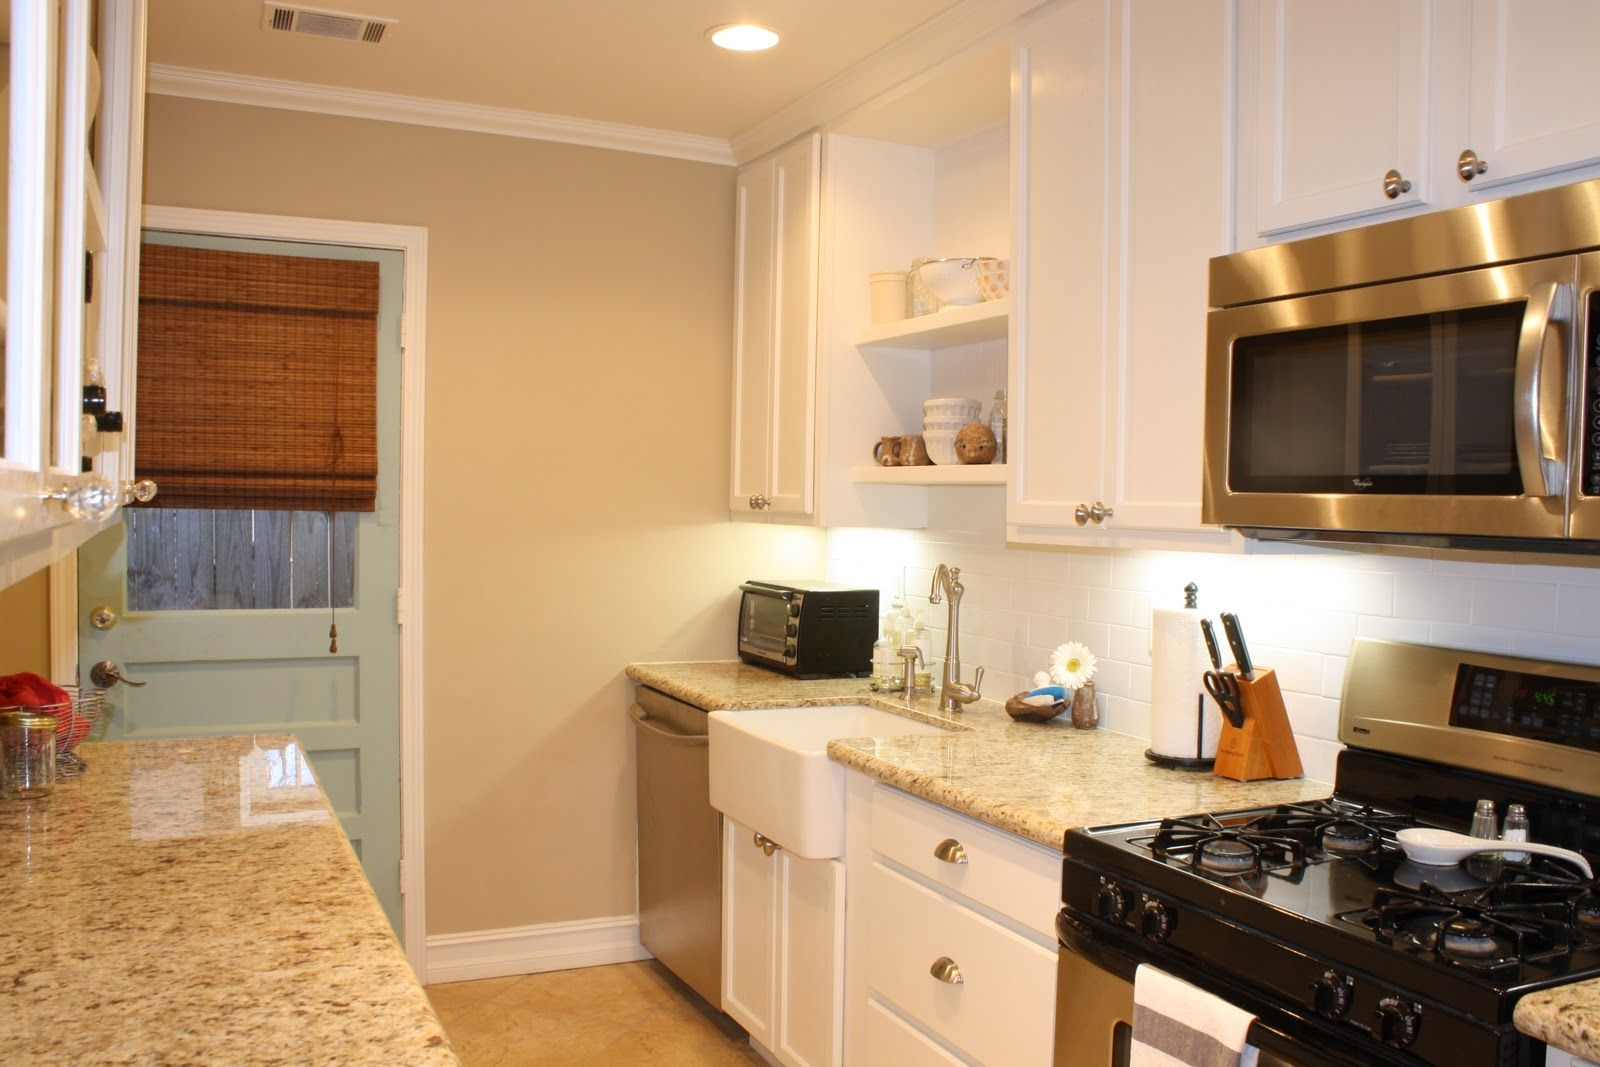 Wall Color Is Benjamin Moore Shaker Beige Cabinets Trim Ceiling BM White Dove Door Martha Stewart Tidewater